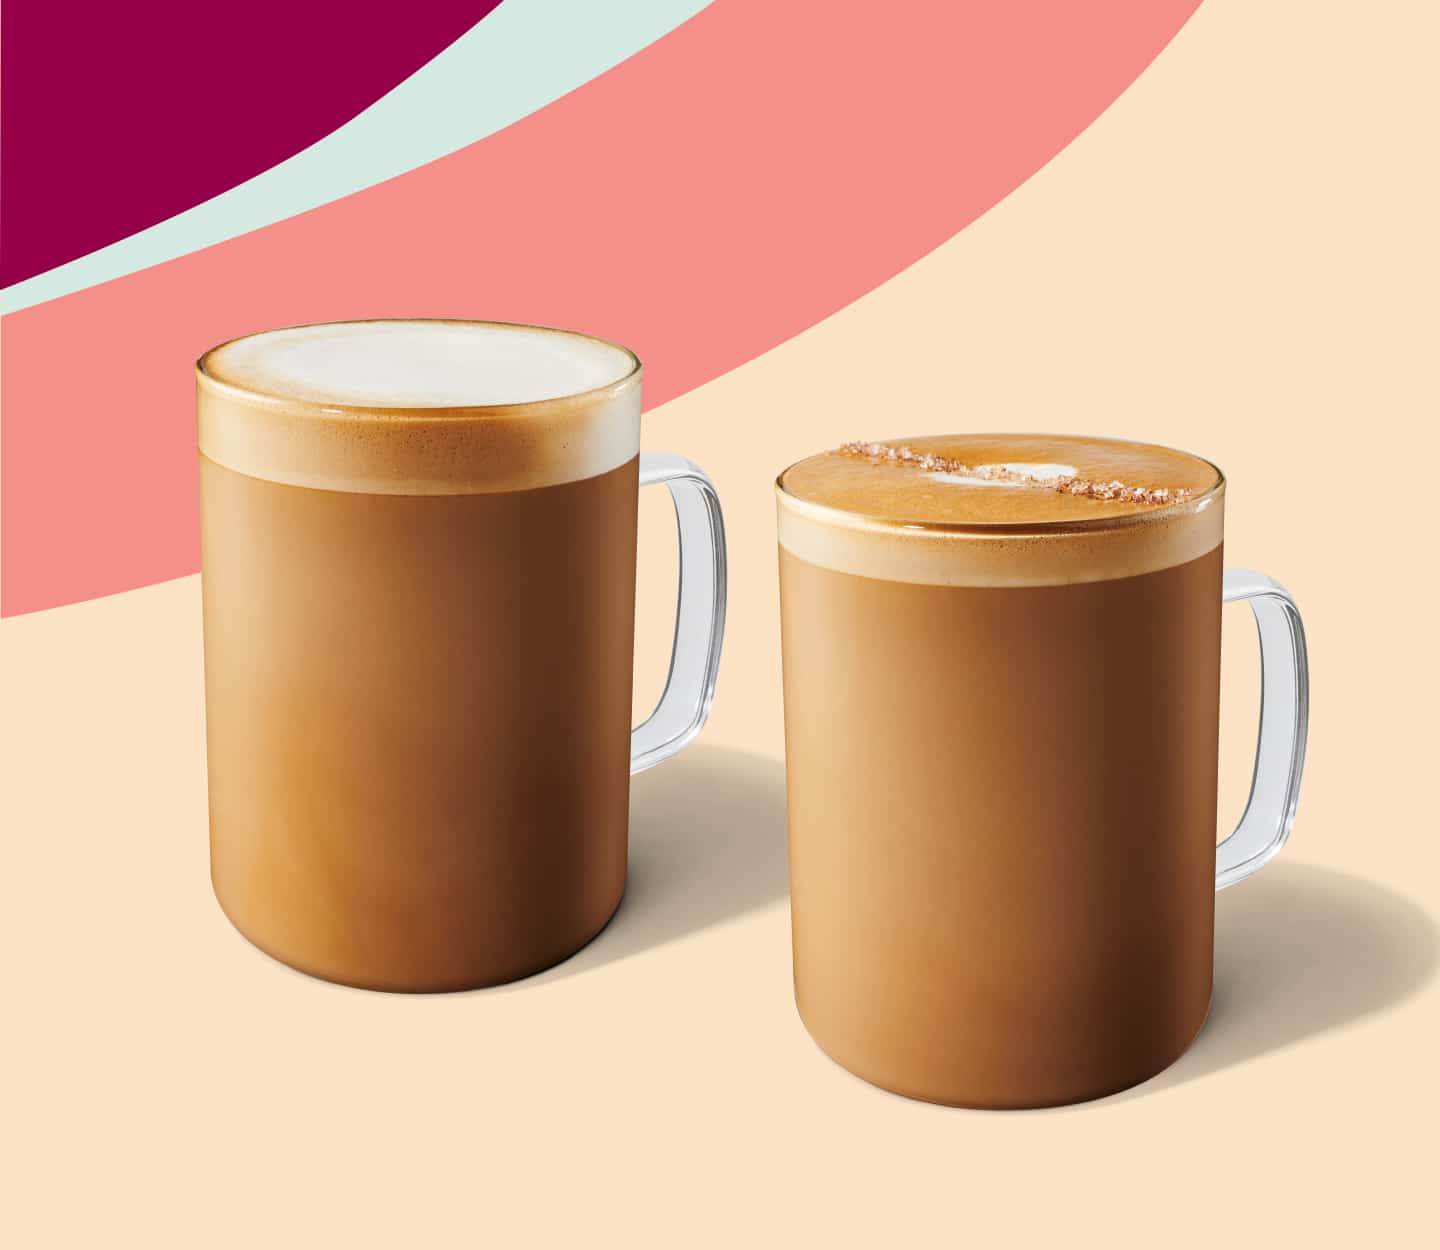 Latte and flat white served in glass mugs.